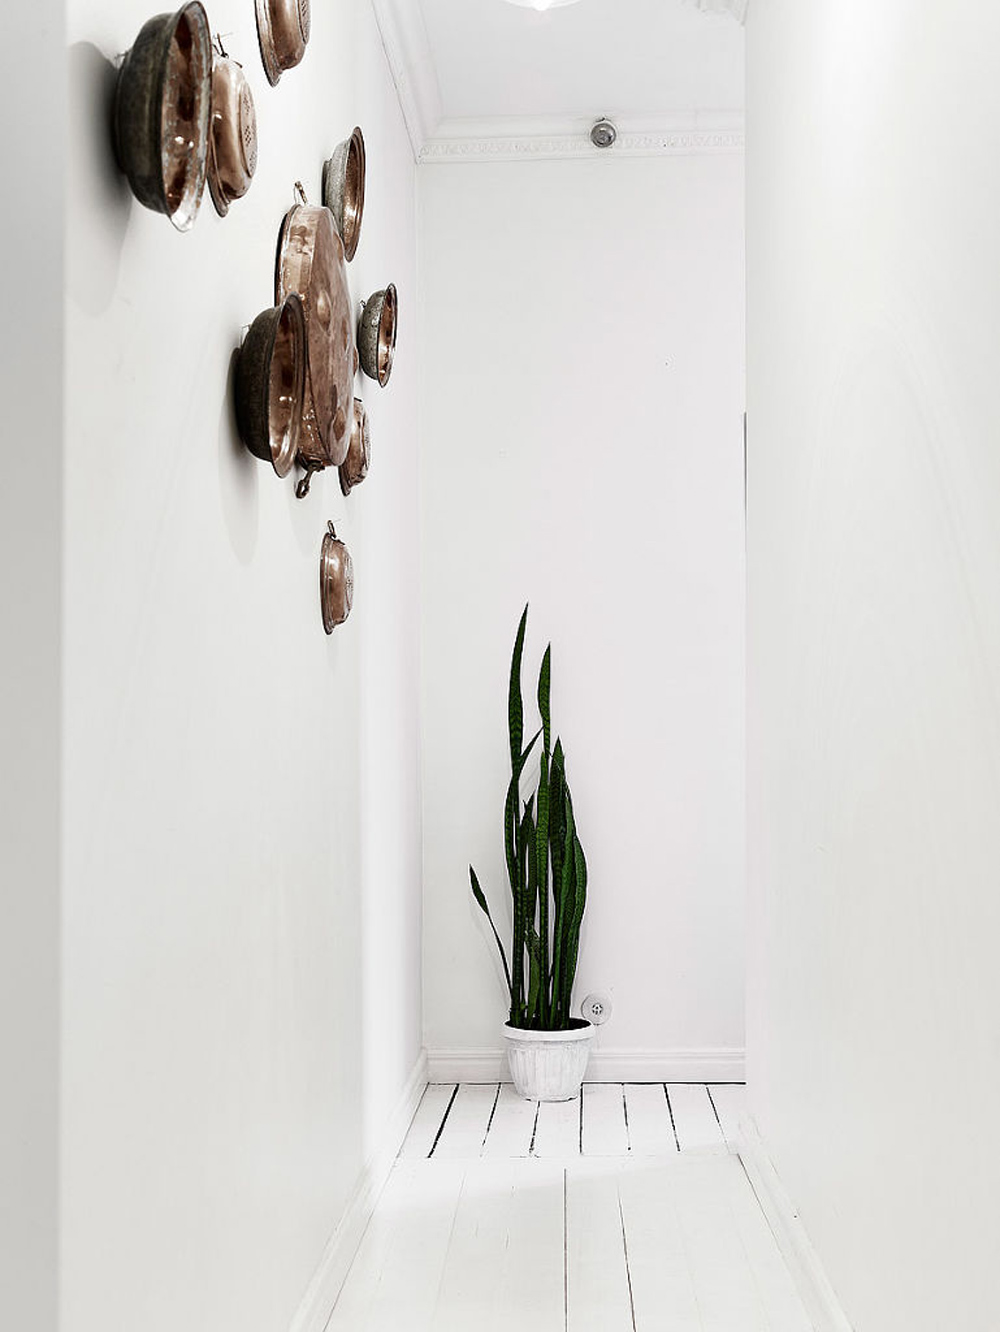 Oracle, Fox, Sunday, Sanctuary, At, Ease, Monochrome, Scandinavian, Interior, Cactus, Hallway